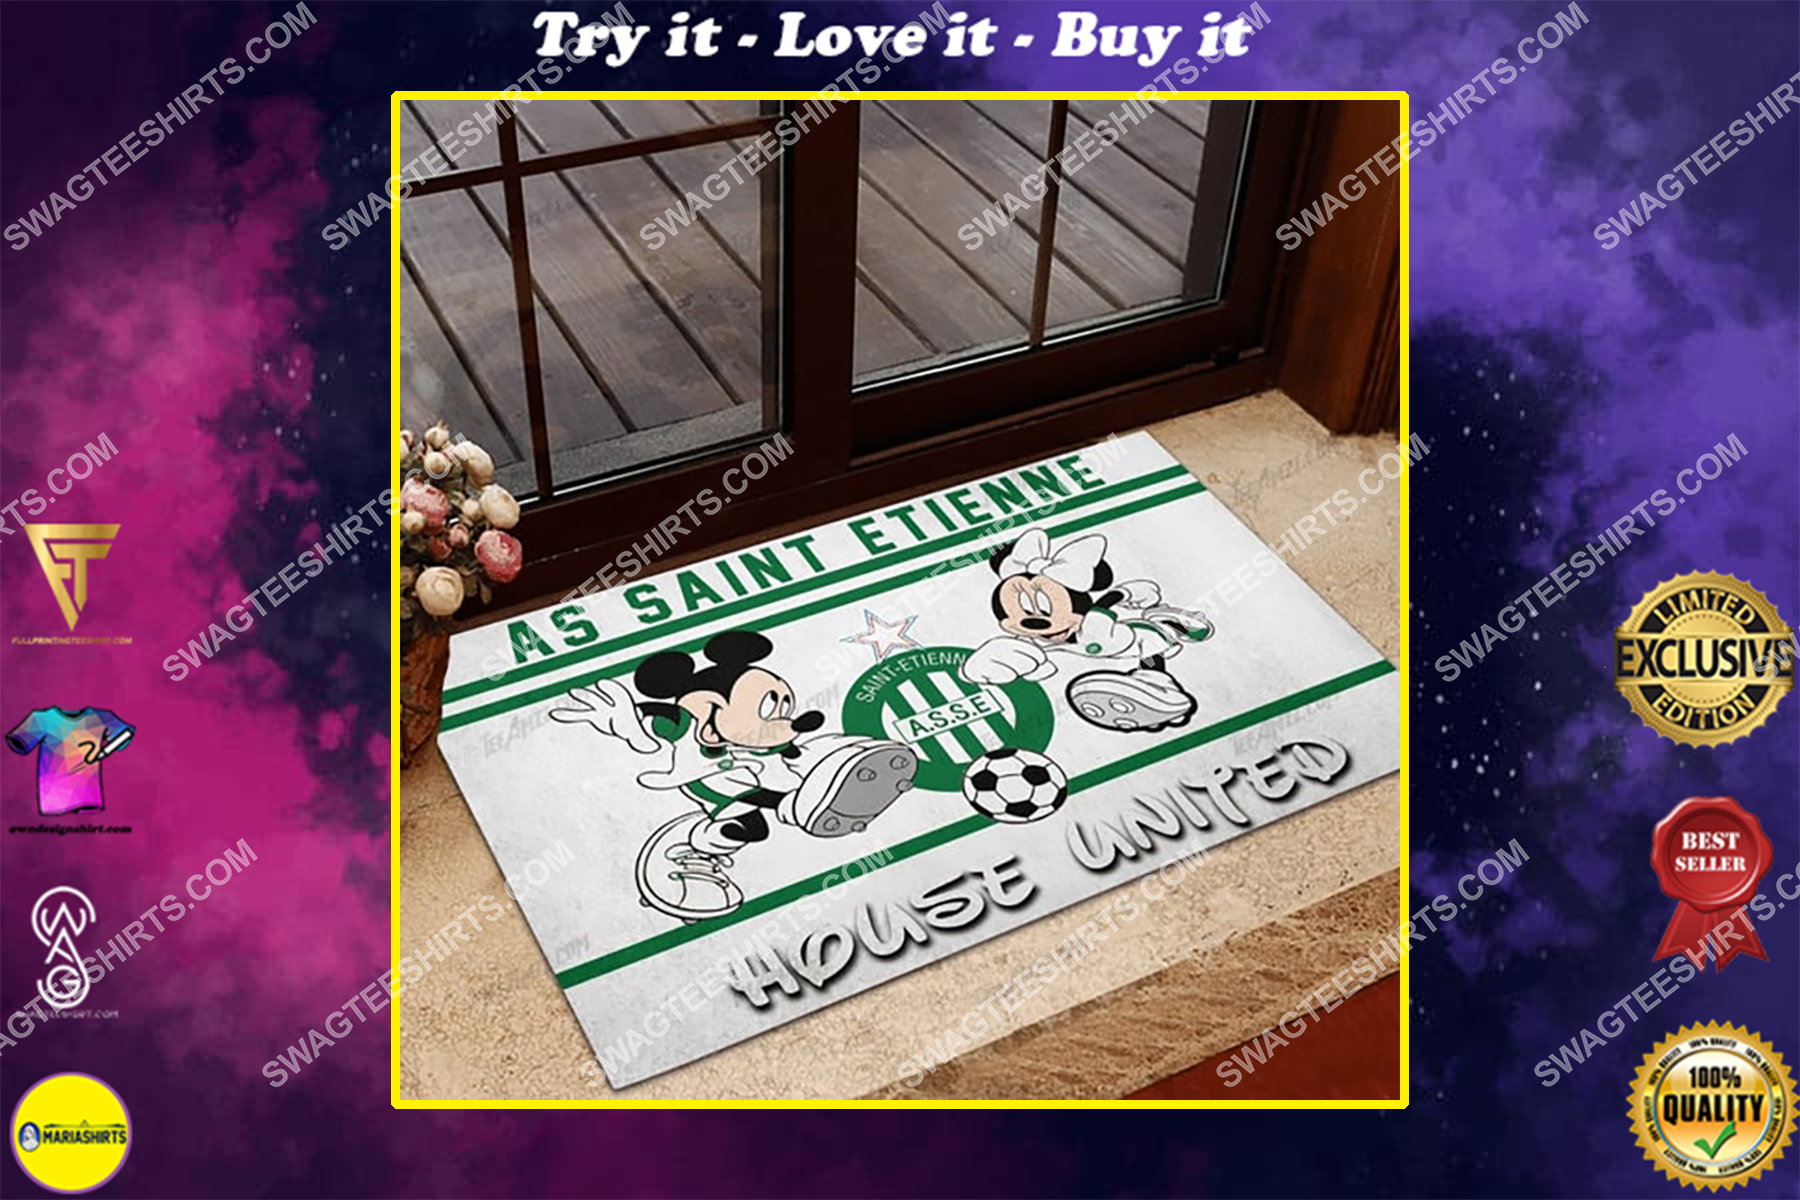 as saint etienne house united mickey mouse and minnie mouse doormat